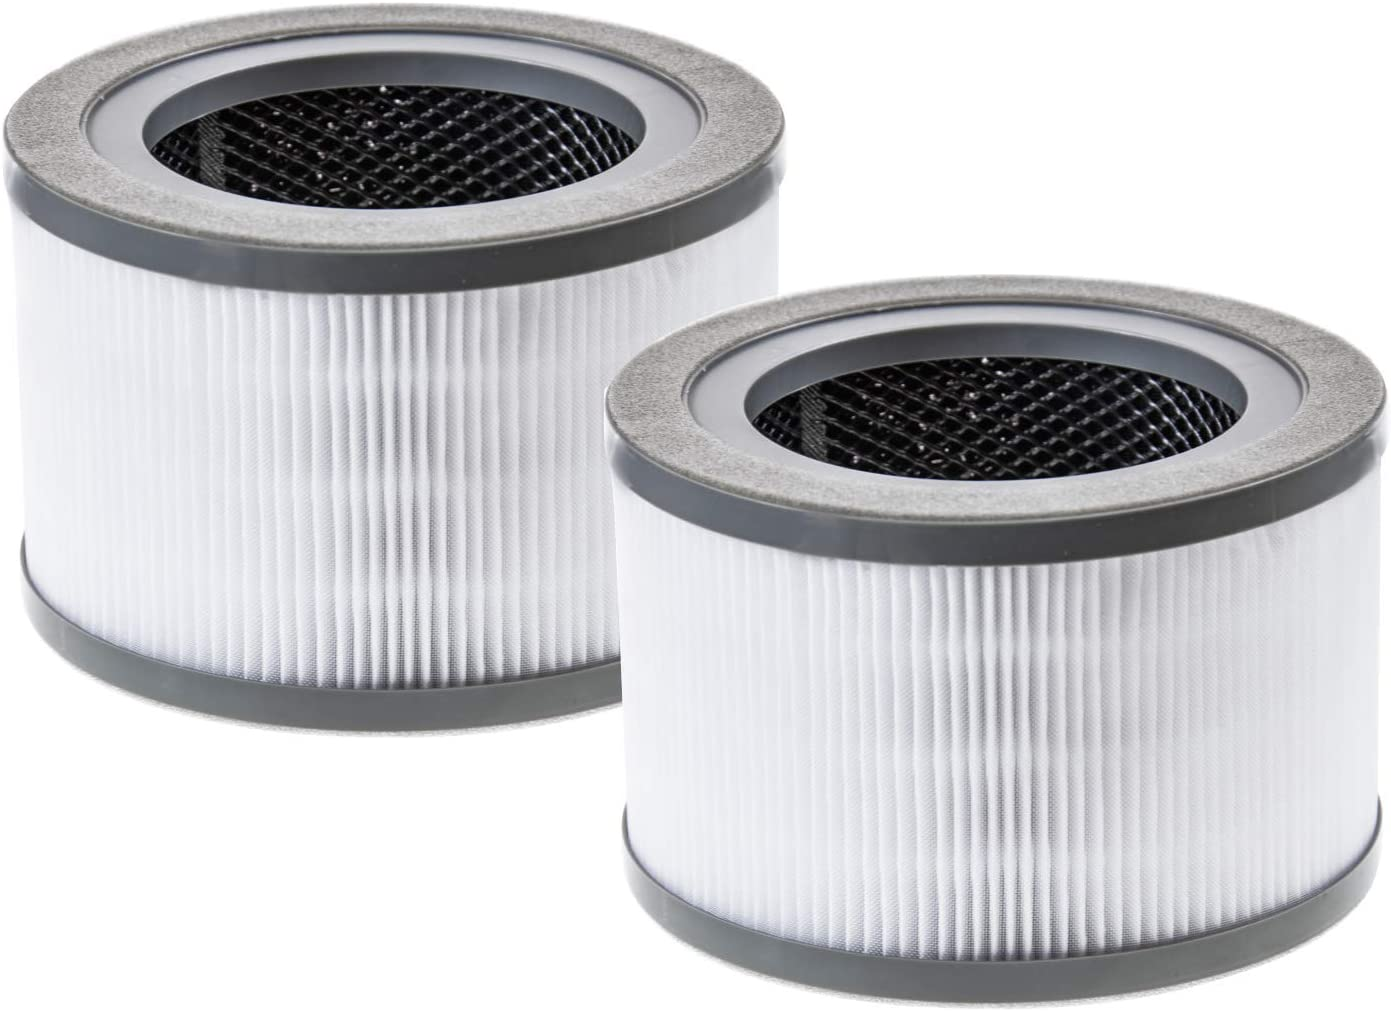 BIHARNT 2 Pack Replacement Filter Compatible with Levoit Vista 200,Vista 200-RF Air Purifier